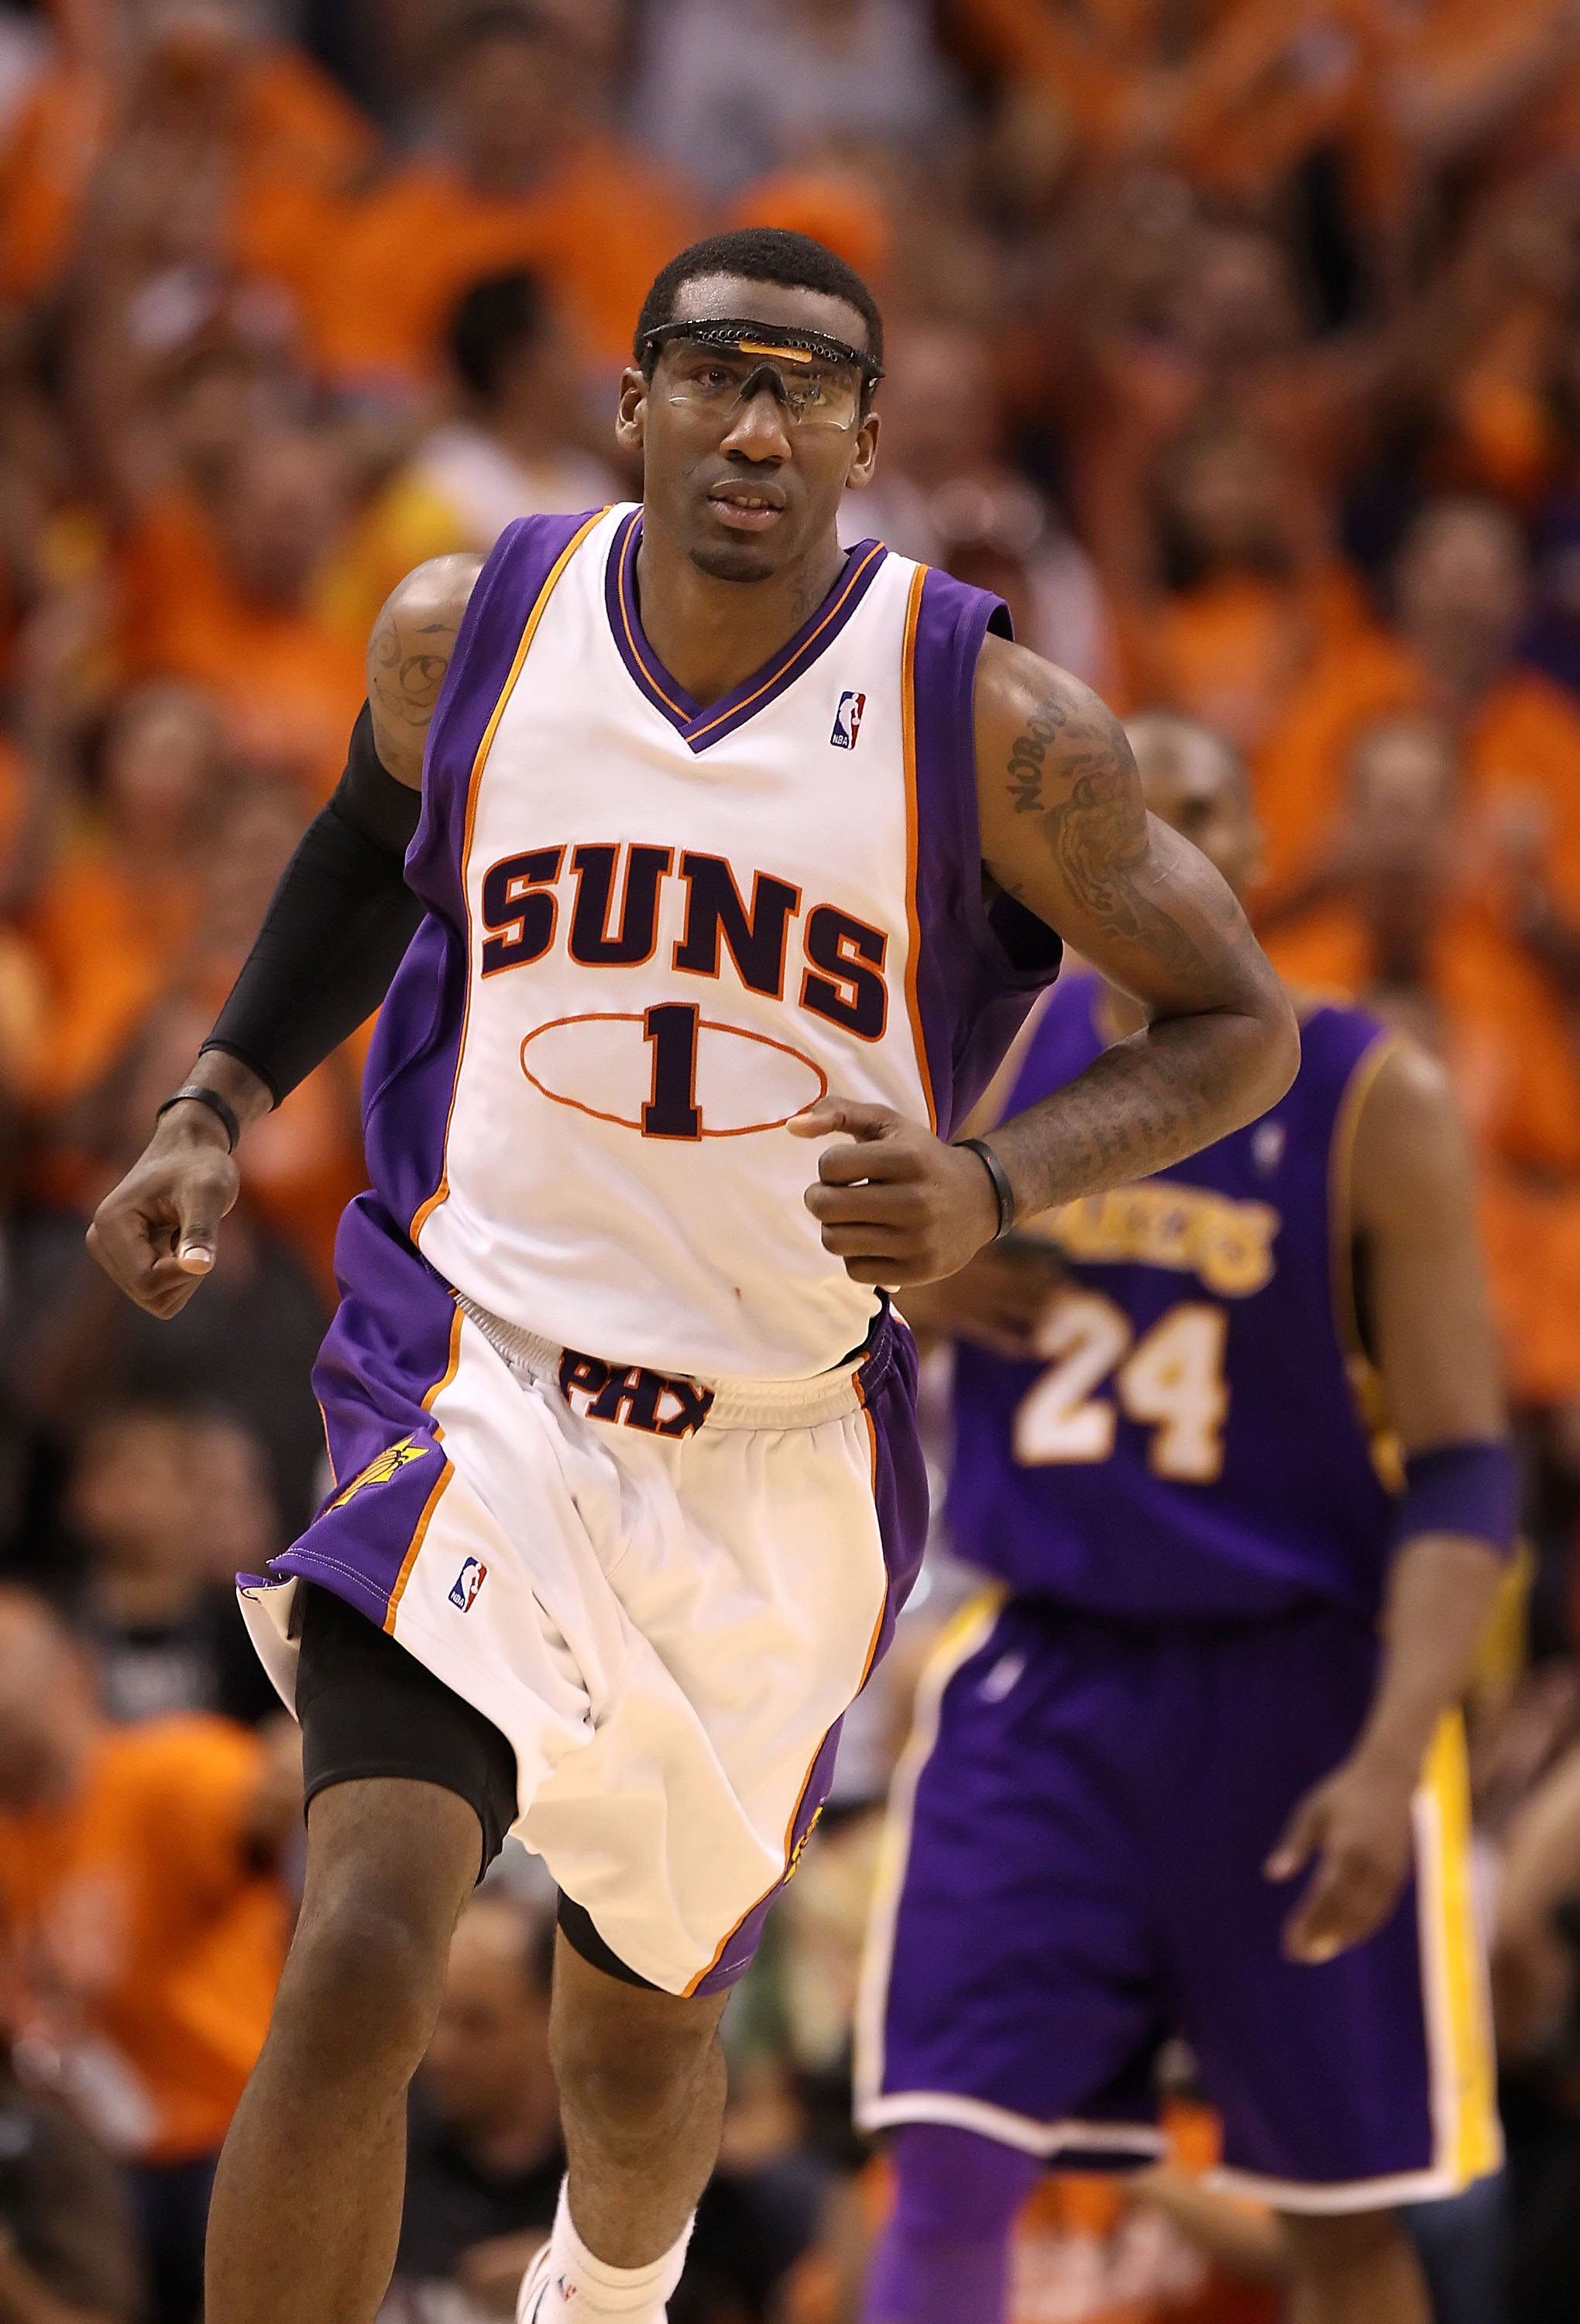 PHOENIX - MAY 29:  Amar'e Stoudemire #1 of the Phoenix Suns in action during Game Six of the Western Conference finals of the 2010 NBA Playoffs against the Los Angeles Lakers at US Airways Center on May 29, 2010 in Phoenix, Arizona. The Lakers defeated th